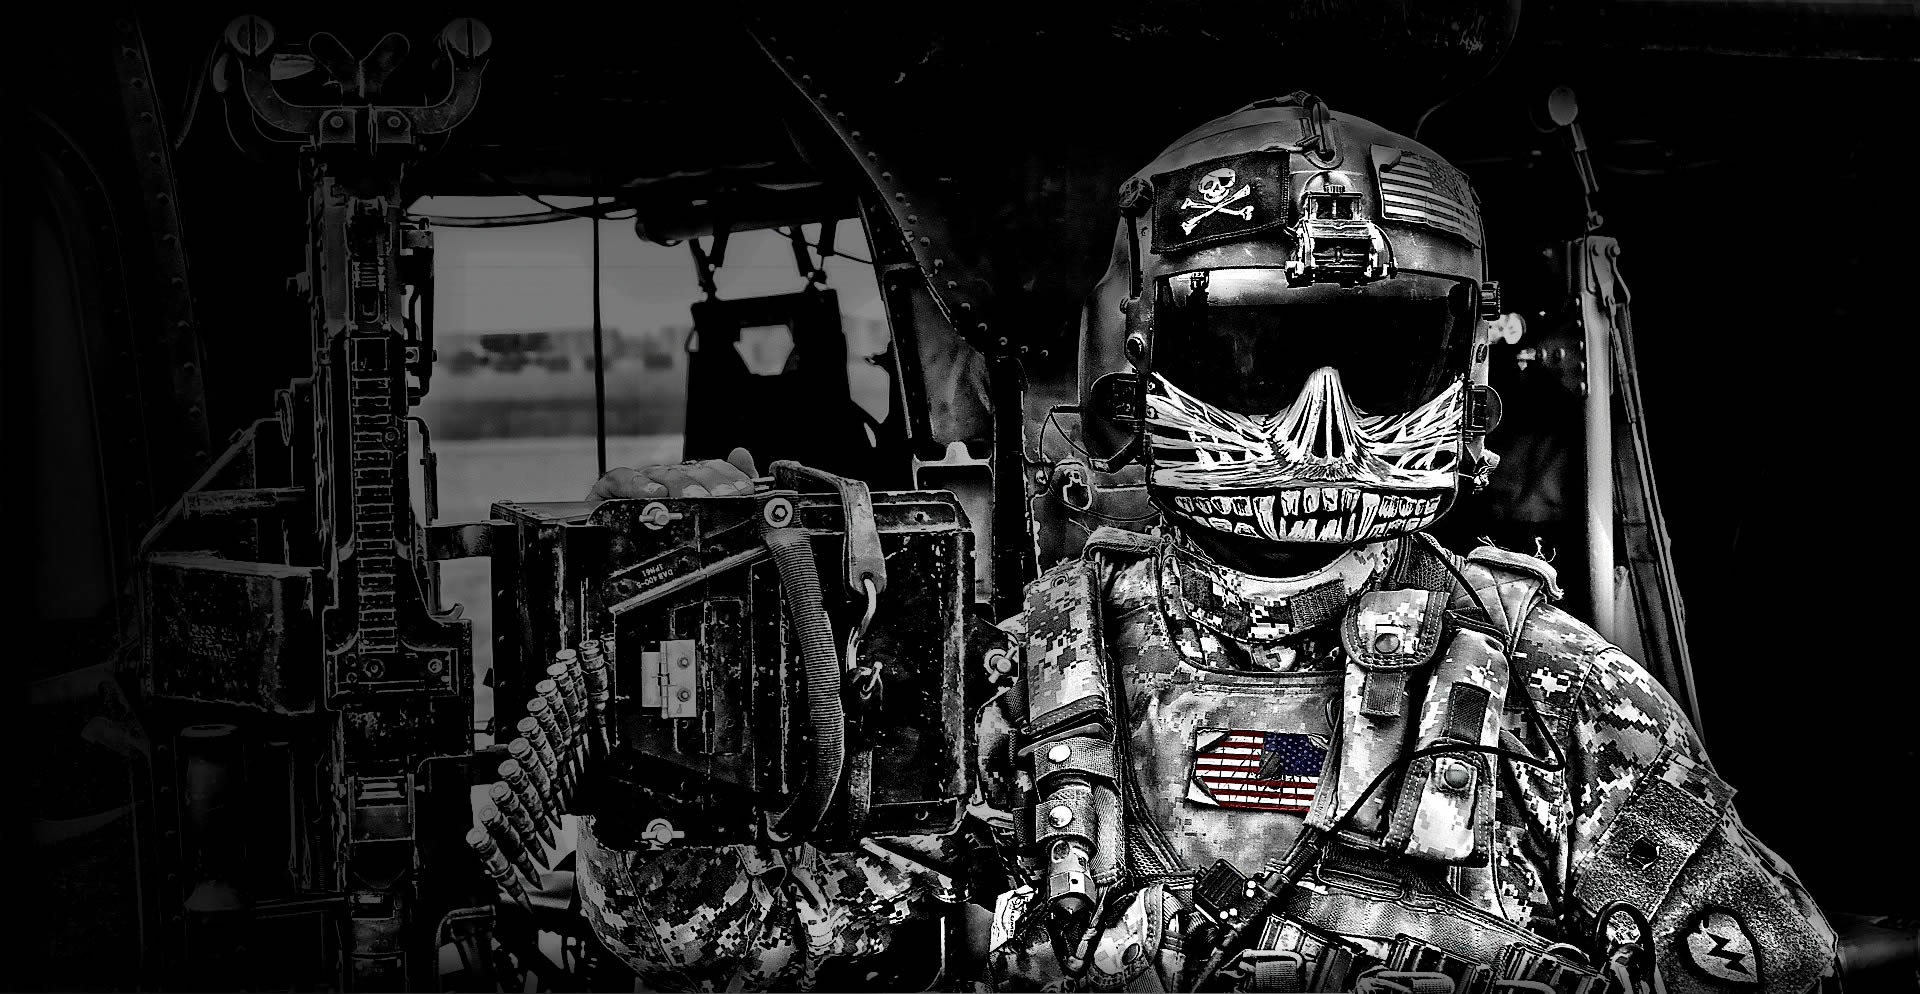 Full Hd P Military Wallpapers Hd Desktop Backgrounds 1920x994